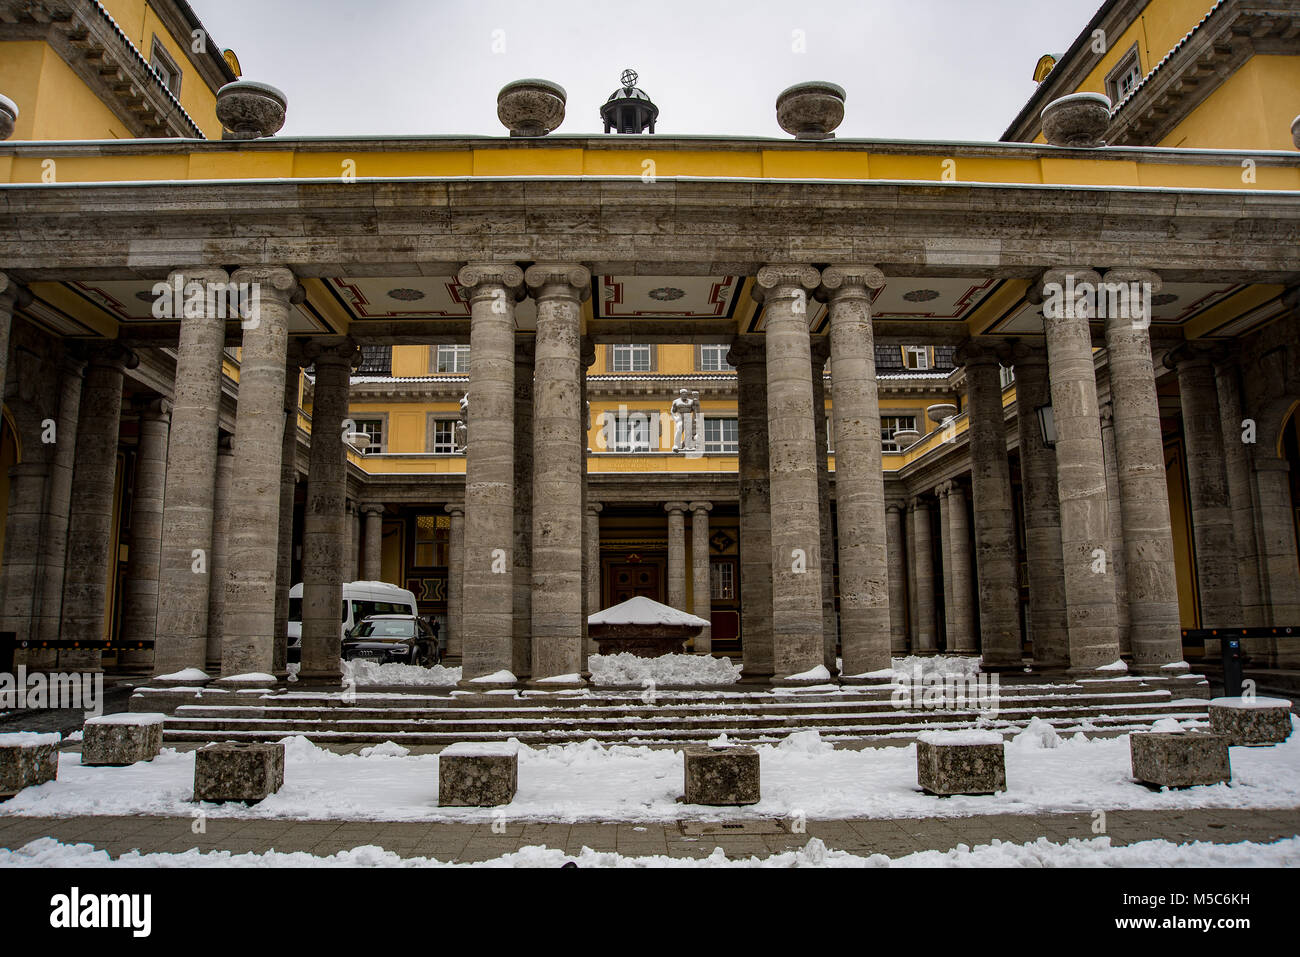 Snow covered exterior of the Munich Reinsurance Company headquarters. - Stock Image